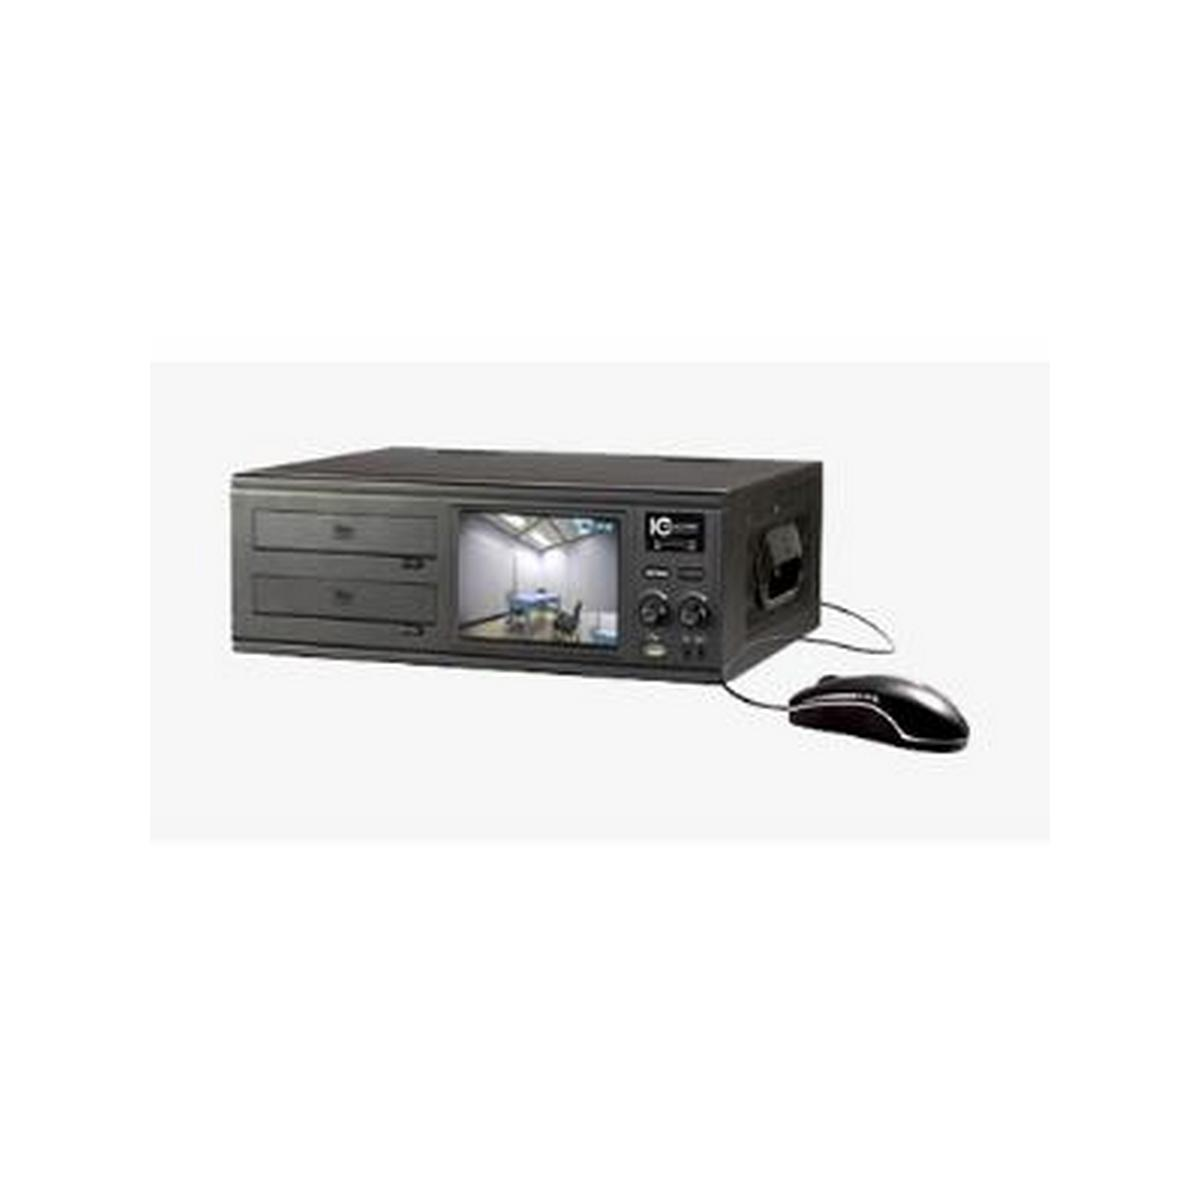 4 CHANNEL DVR - FORENSIC DVR, FEATURES A 500 GB HARD DRIVE, 120/120 FPS AT CIF UP TO D1 WITH H.264E, PENTAPLEX OPERATION - NON-RACKMOUNT, DUAL WITH DVD